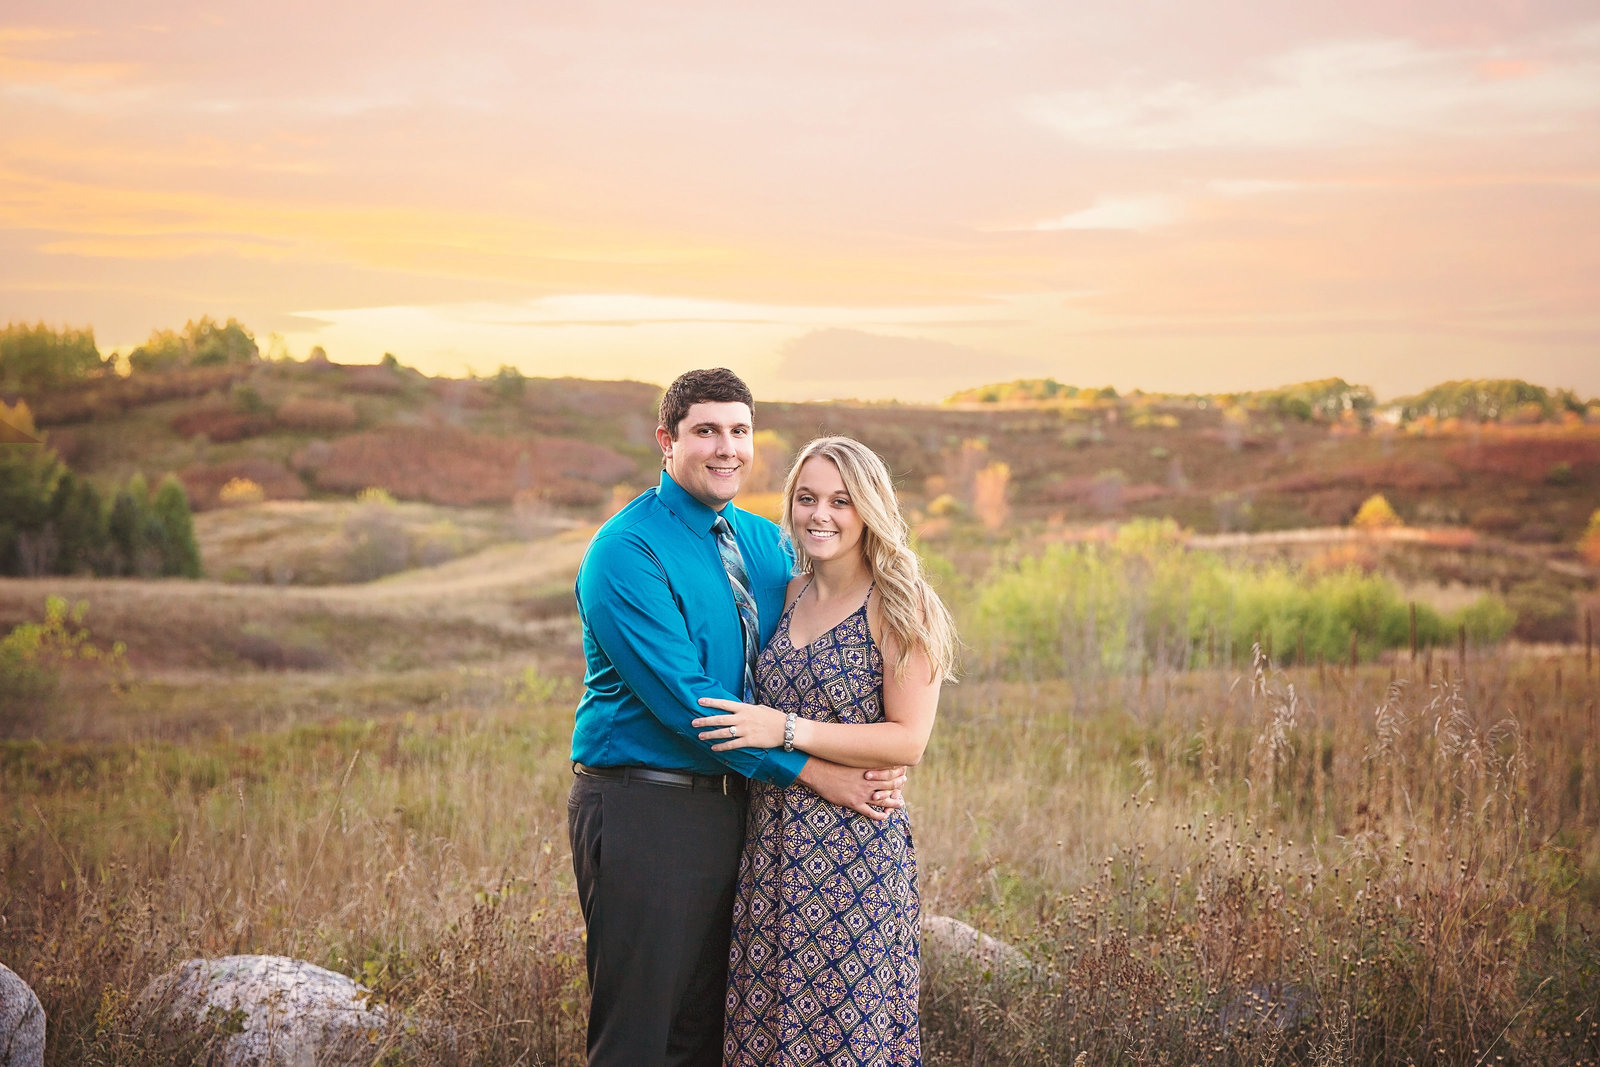 Engagement Wedding Photographer at Photos by Ciera Bianchi